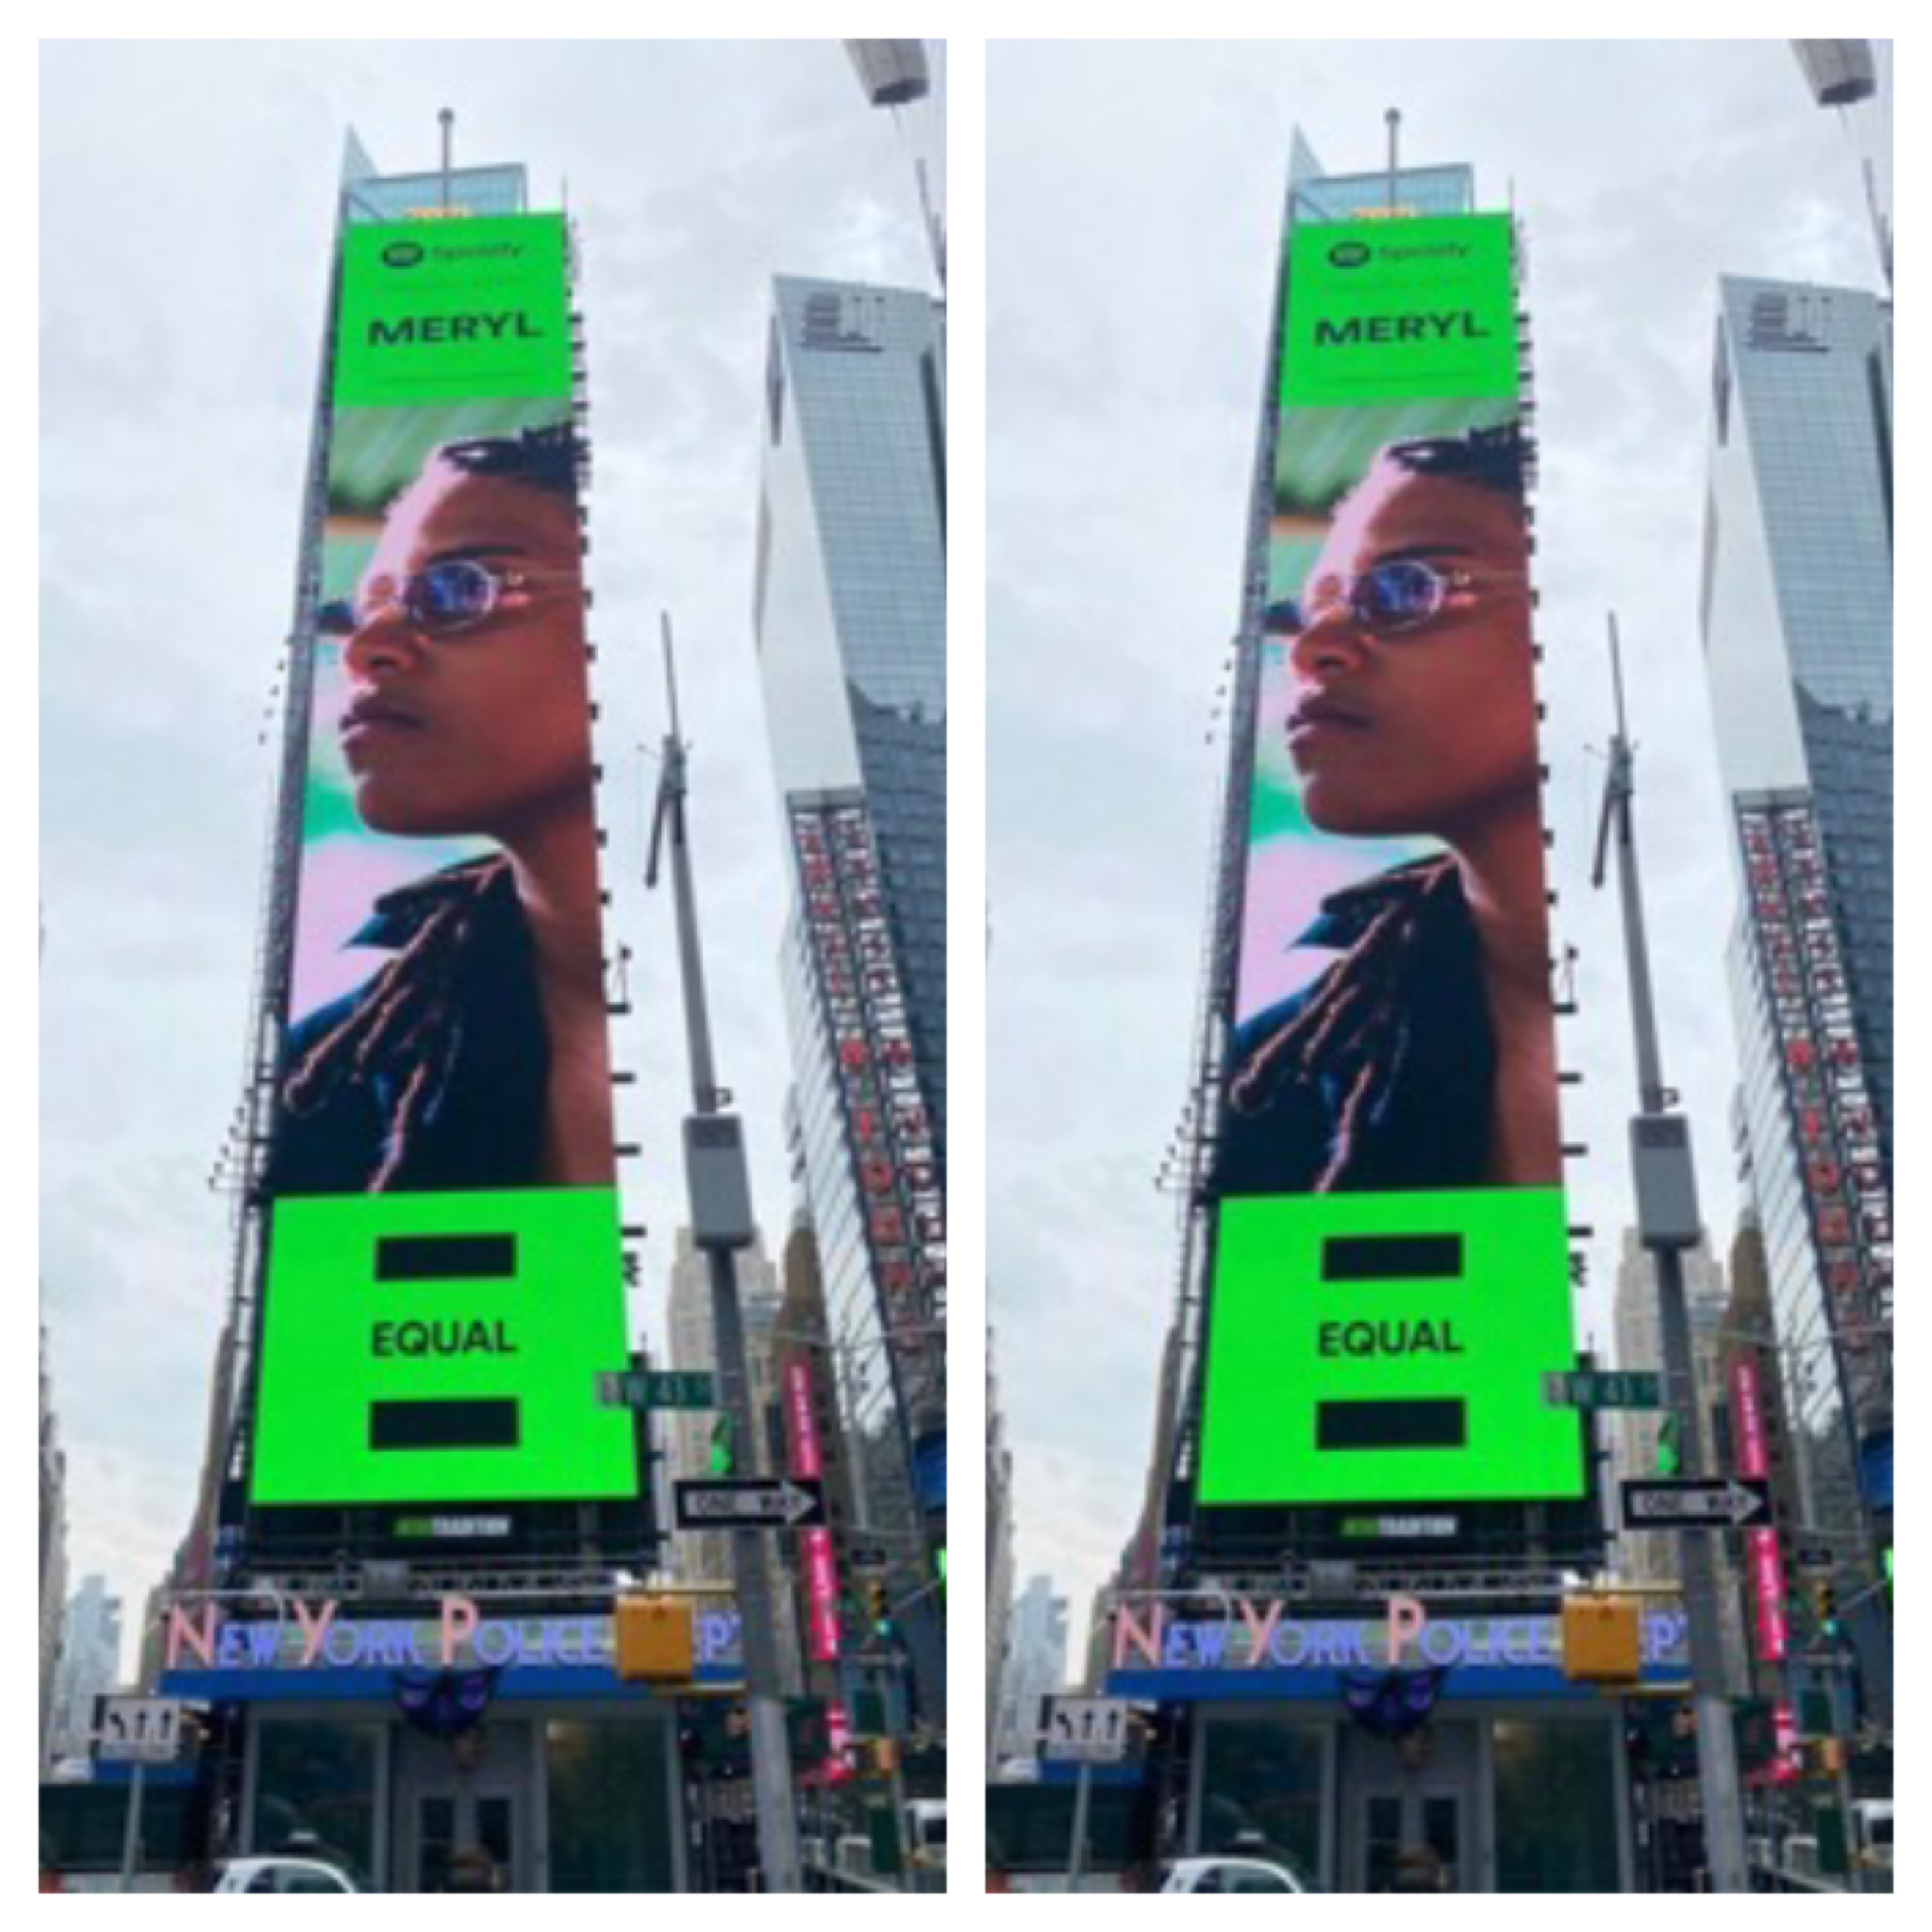 Meryl : La rappeuse martiniquaise affichée en grand en plein Times Square à New-York